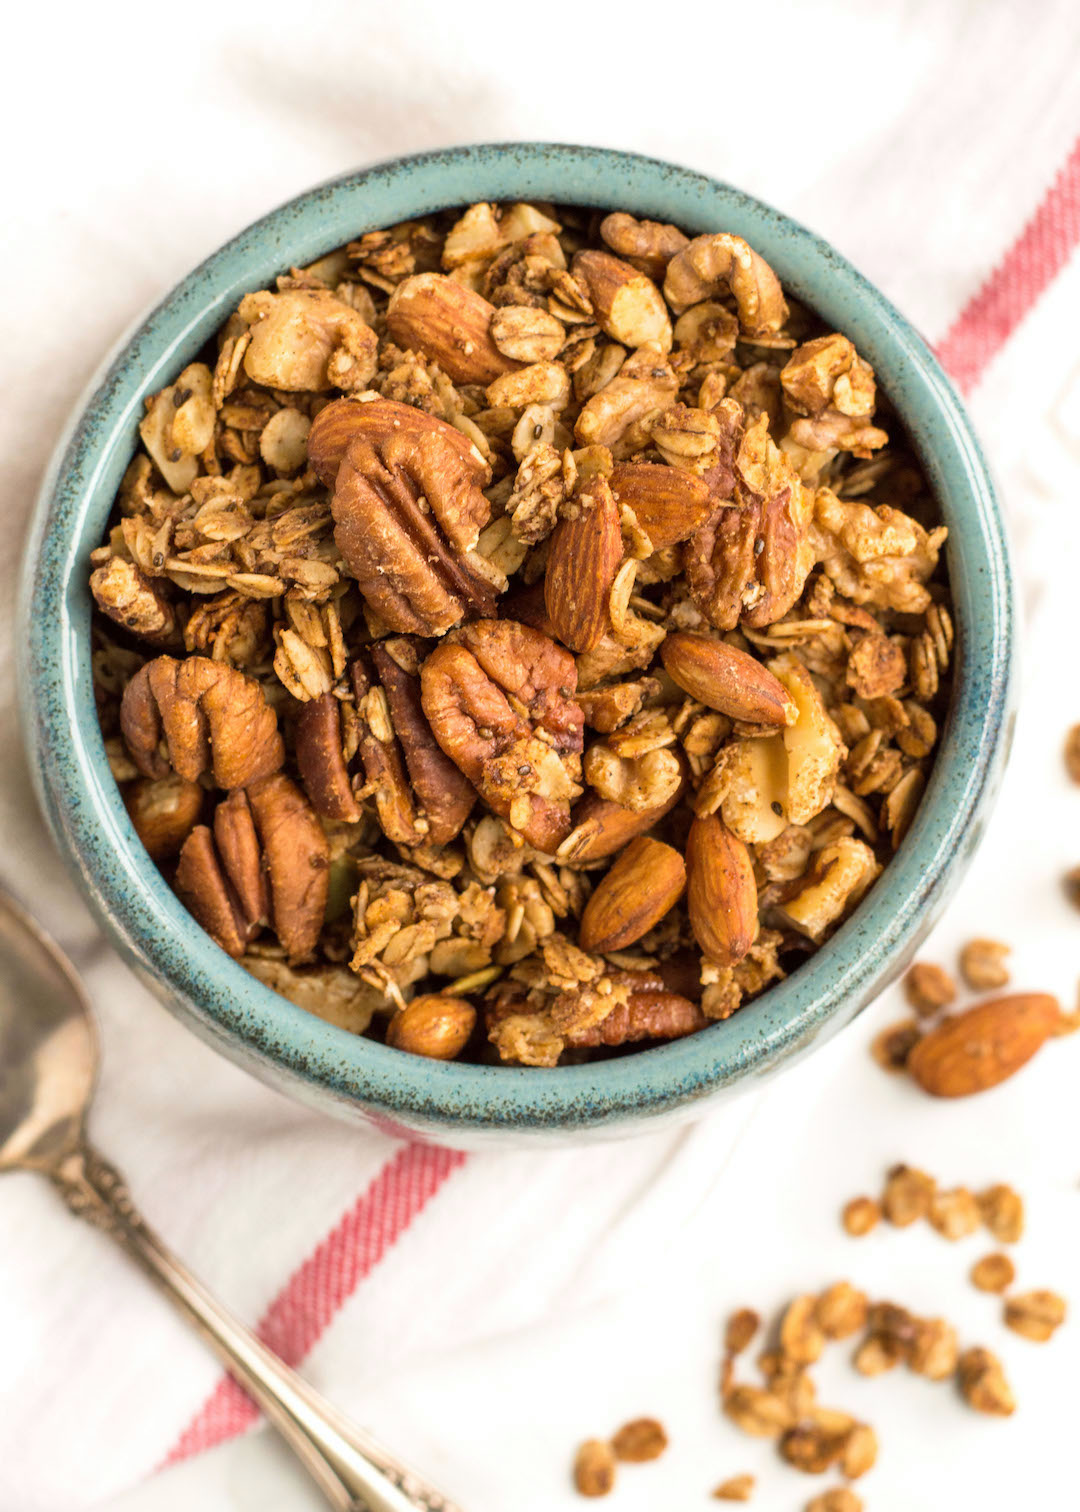 Superfood Gingerbread Granola | breakfast | granola | recipe | superfood, super seeds, nuts and seeds | gluten free, dairy free, vegan possible | gingerbread recipe | festive breakfast